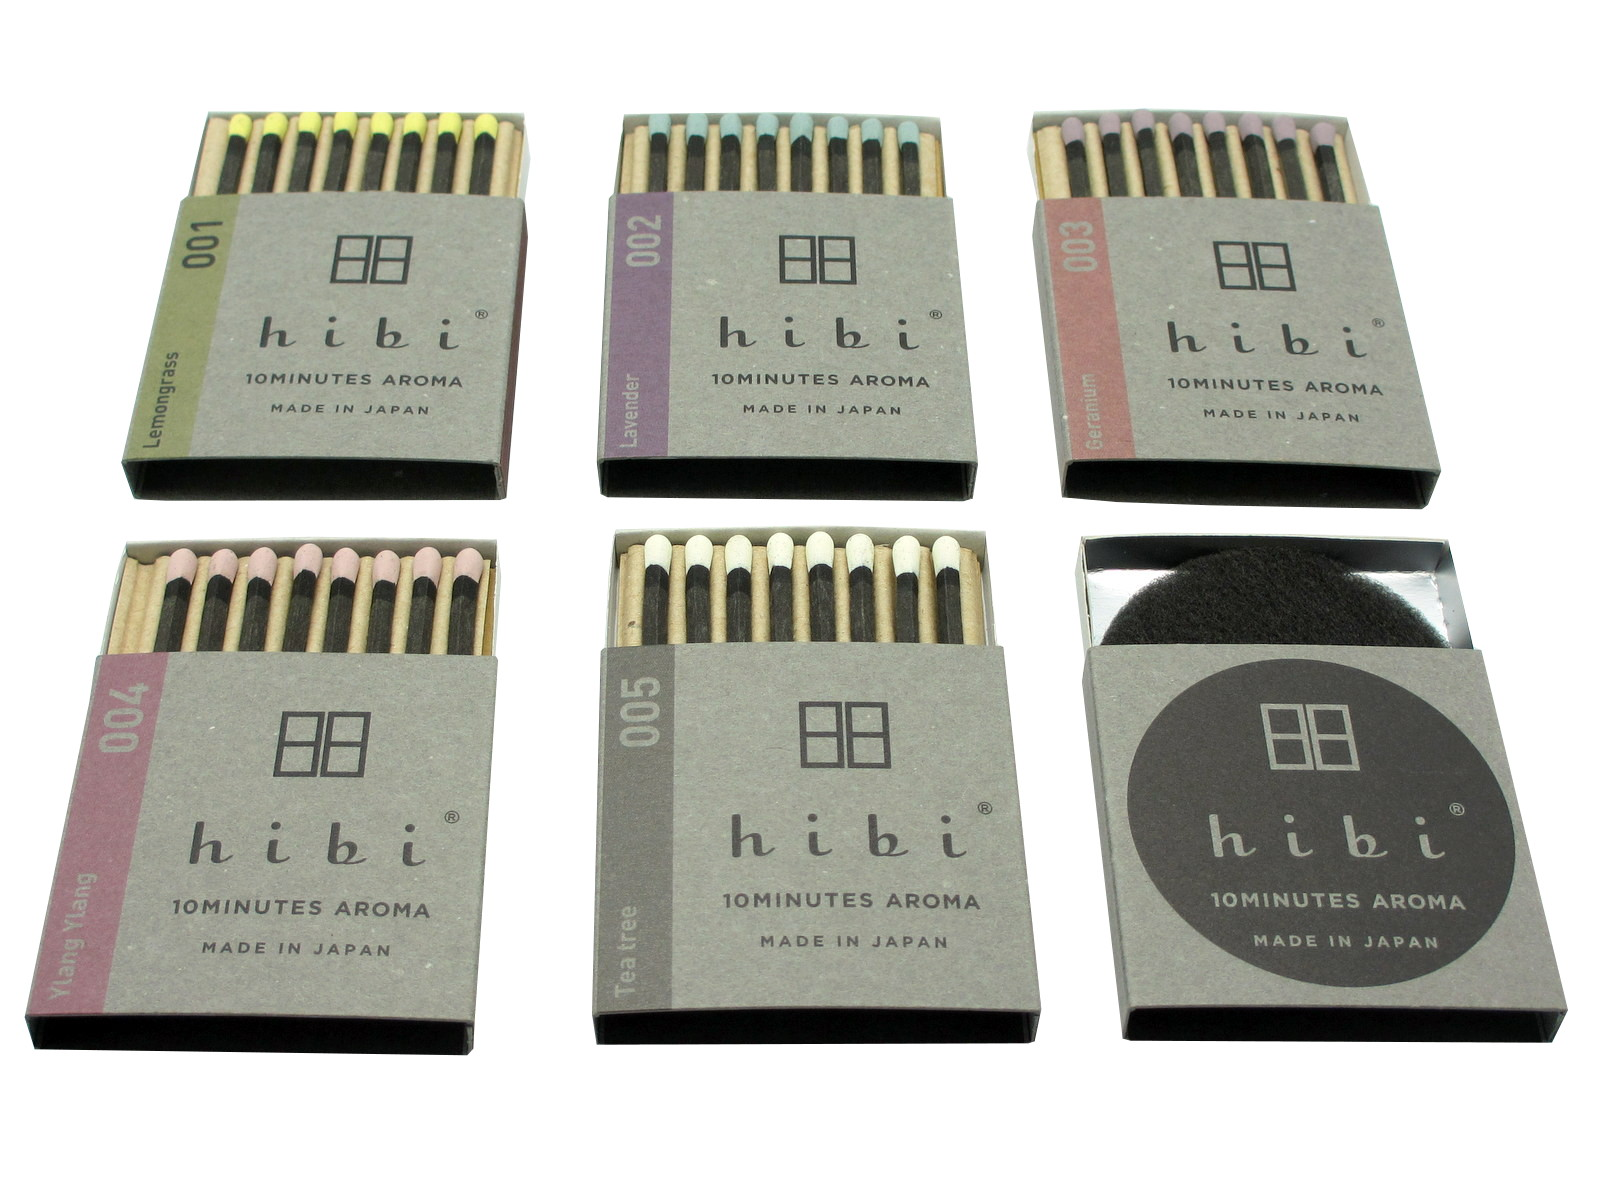 hibi ® - 10MINUTES AROMA - MADE IN JAPAN